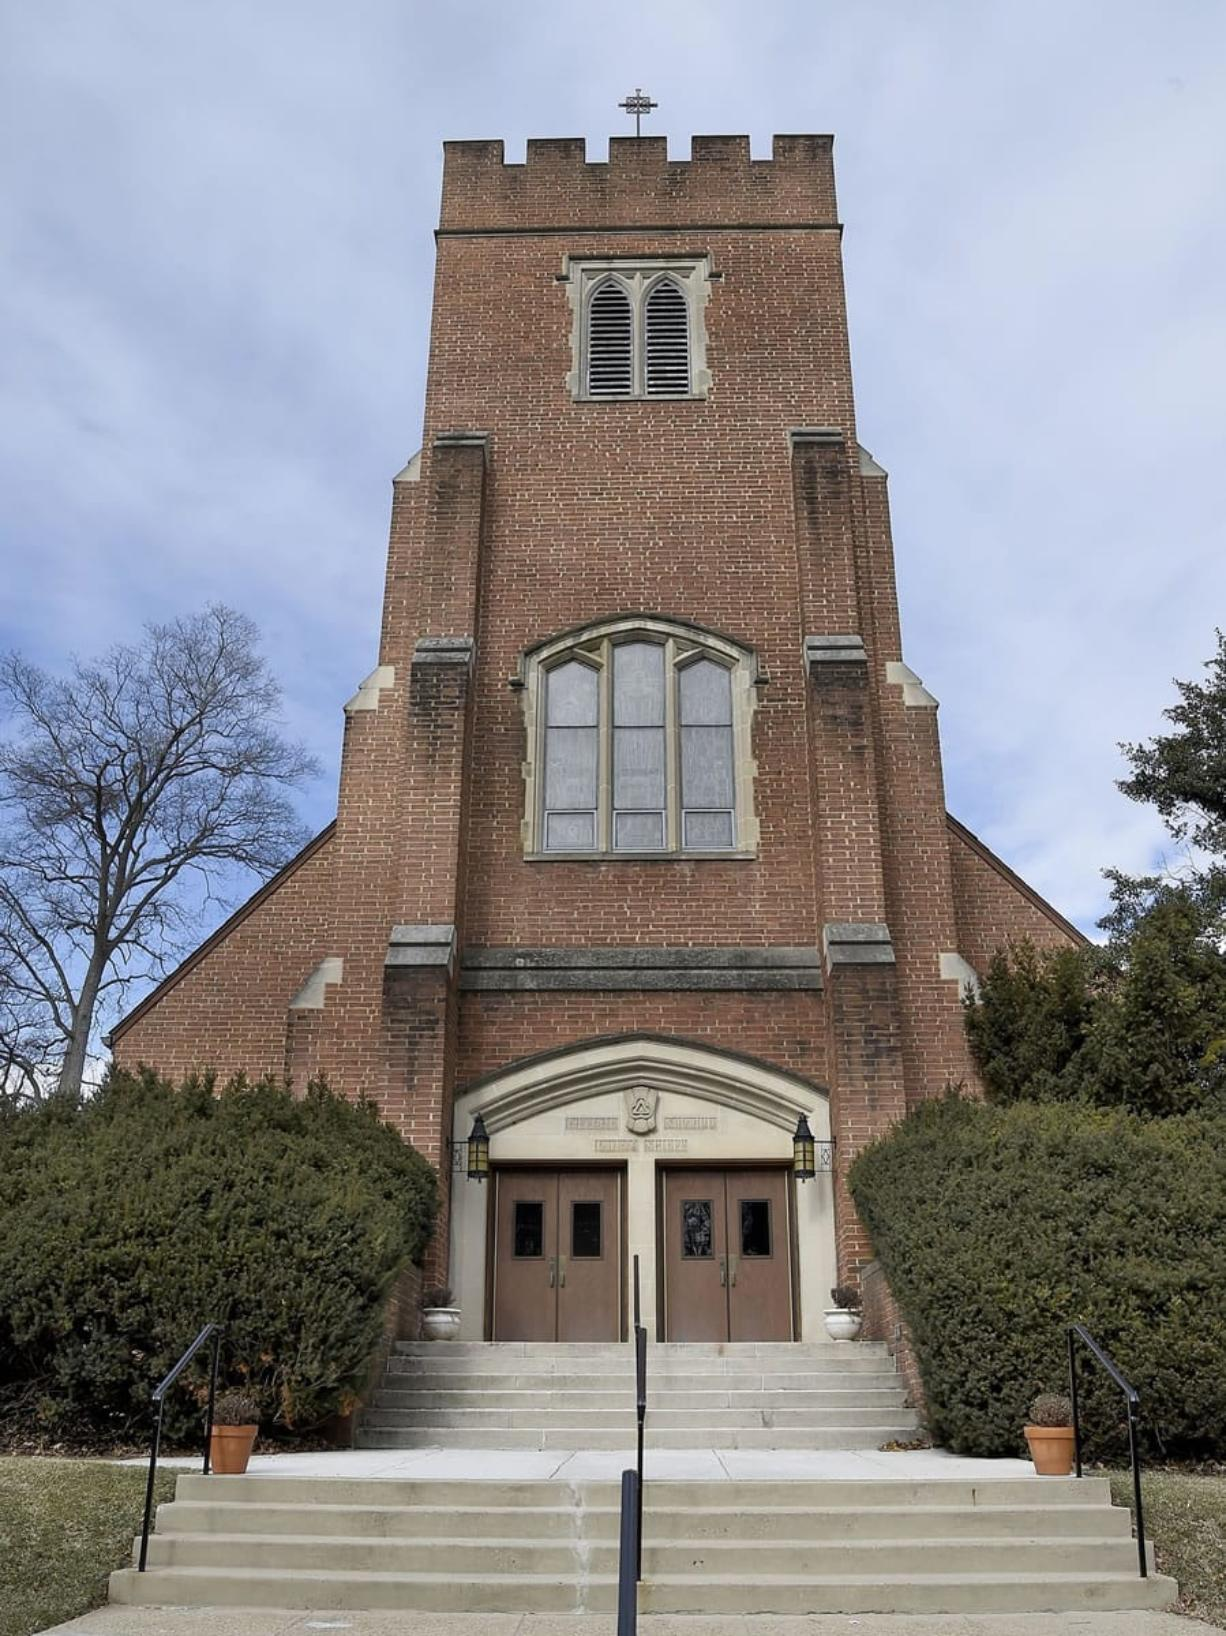 Grace Episcopal Church in Silver Spring, Md., shown here in February, is undergoing a two-year certification process through the New Jersey-based Greenfaith program.